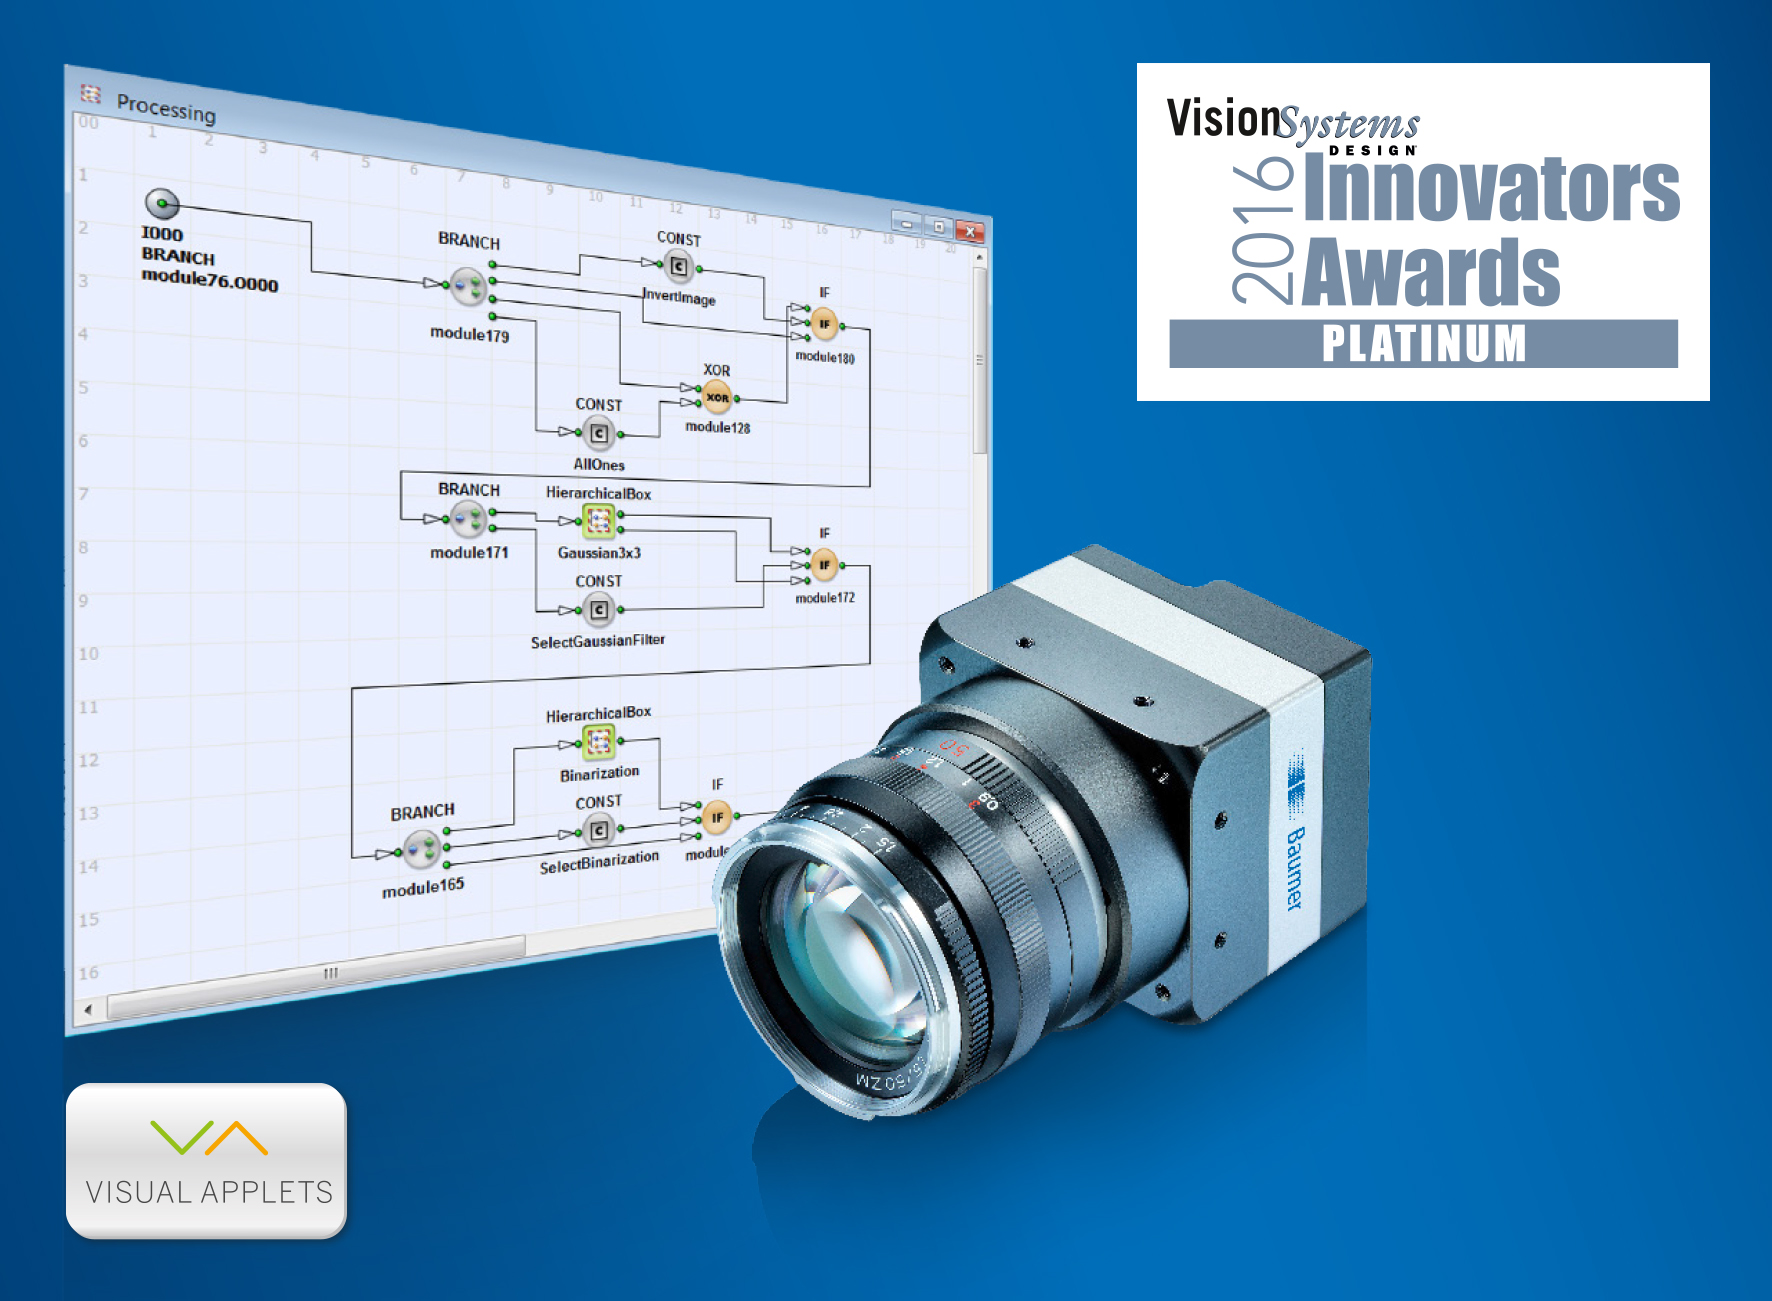 Baumer LX VisualApplets industrial cameras honored with a Platinum